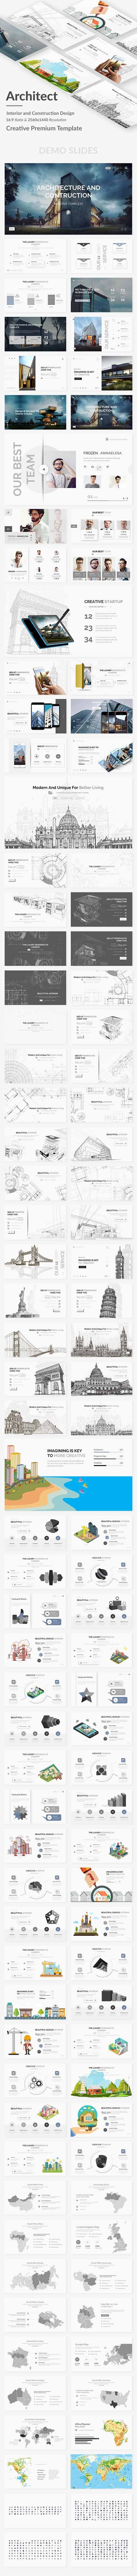 GR - Architecture Interior and Construction Design Powerpoint Template 21709818